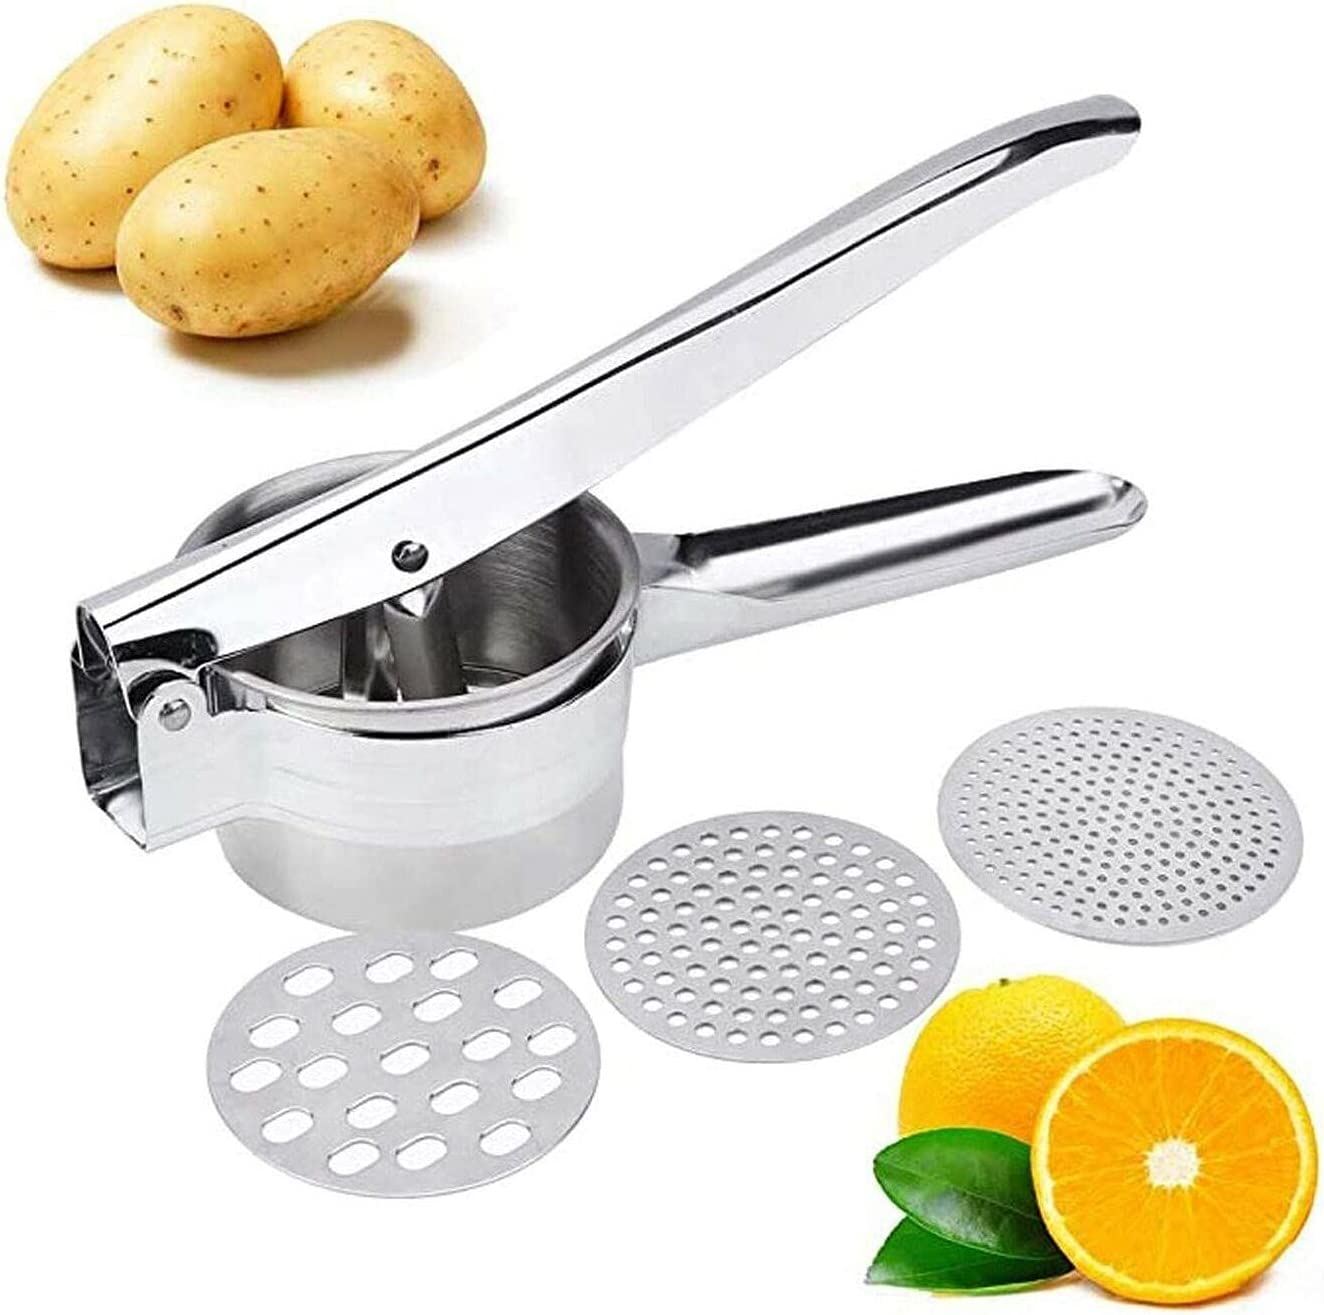 Premium Super beauty product restock quality top! Stainless Steel Potato Ricer Set g Ranking TOP1 Ricing 3 Kitchen with